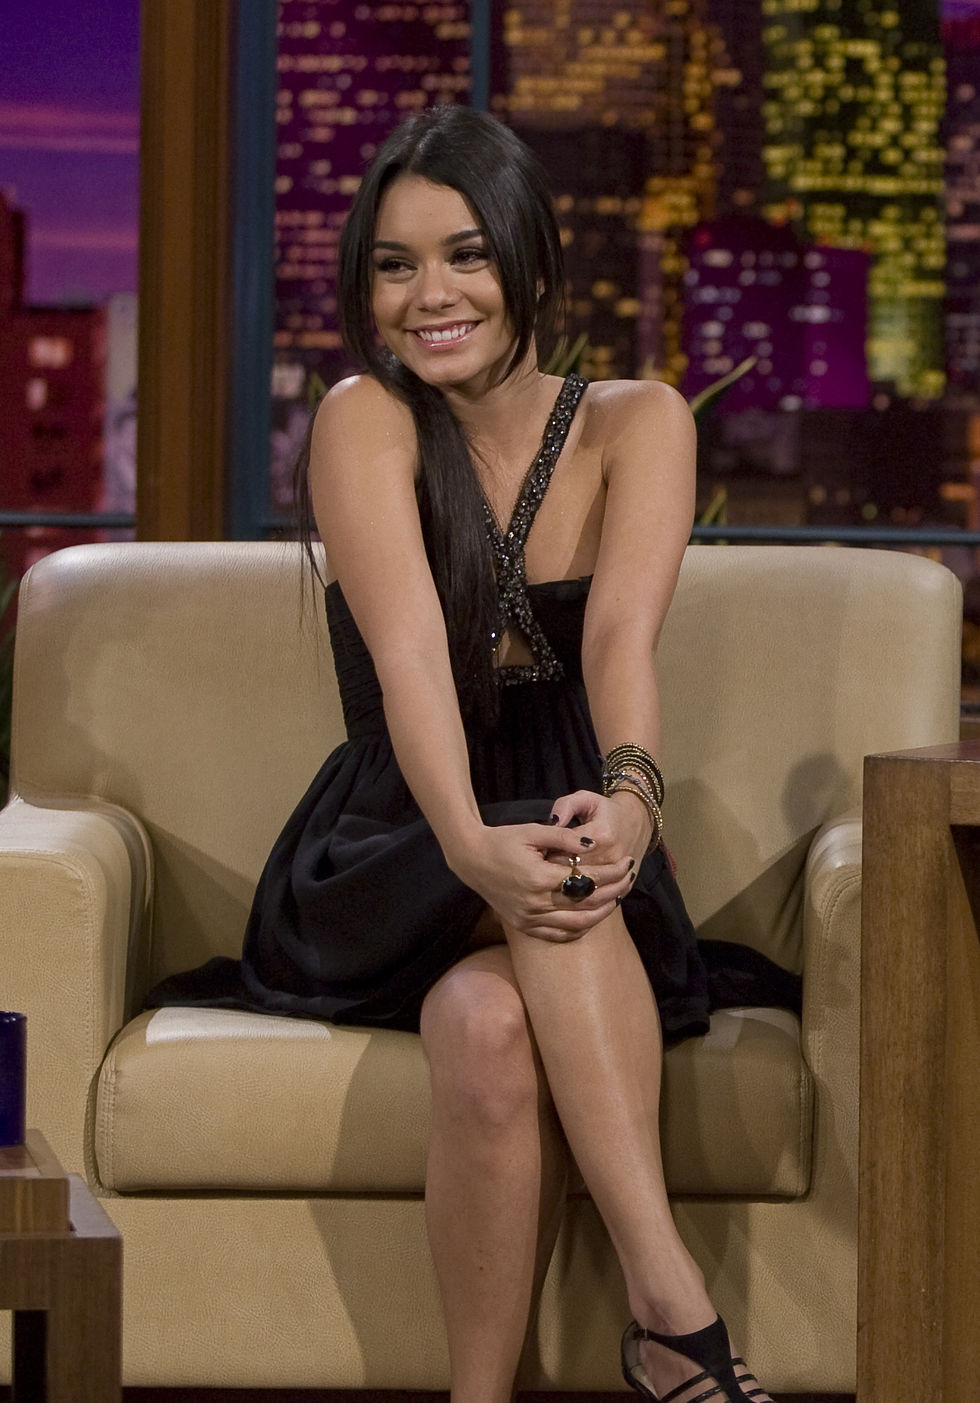 vanessa-hudgens-at-the-tonight-show-with-jay-leno-in-los-angeles-01